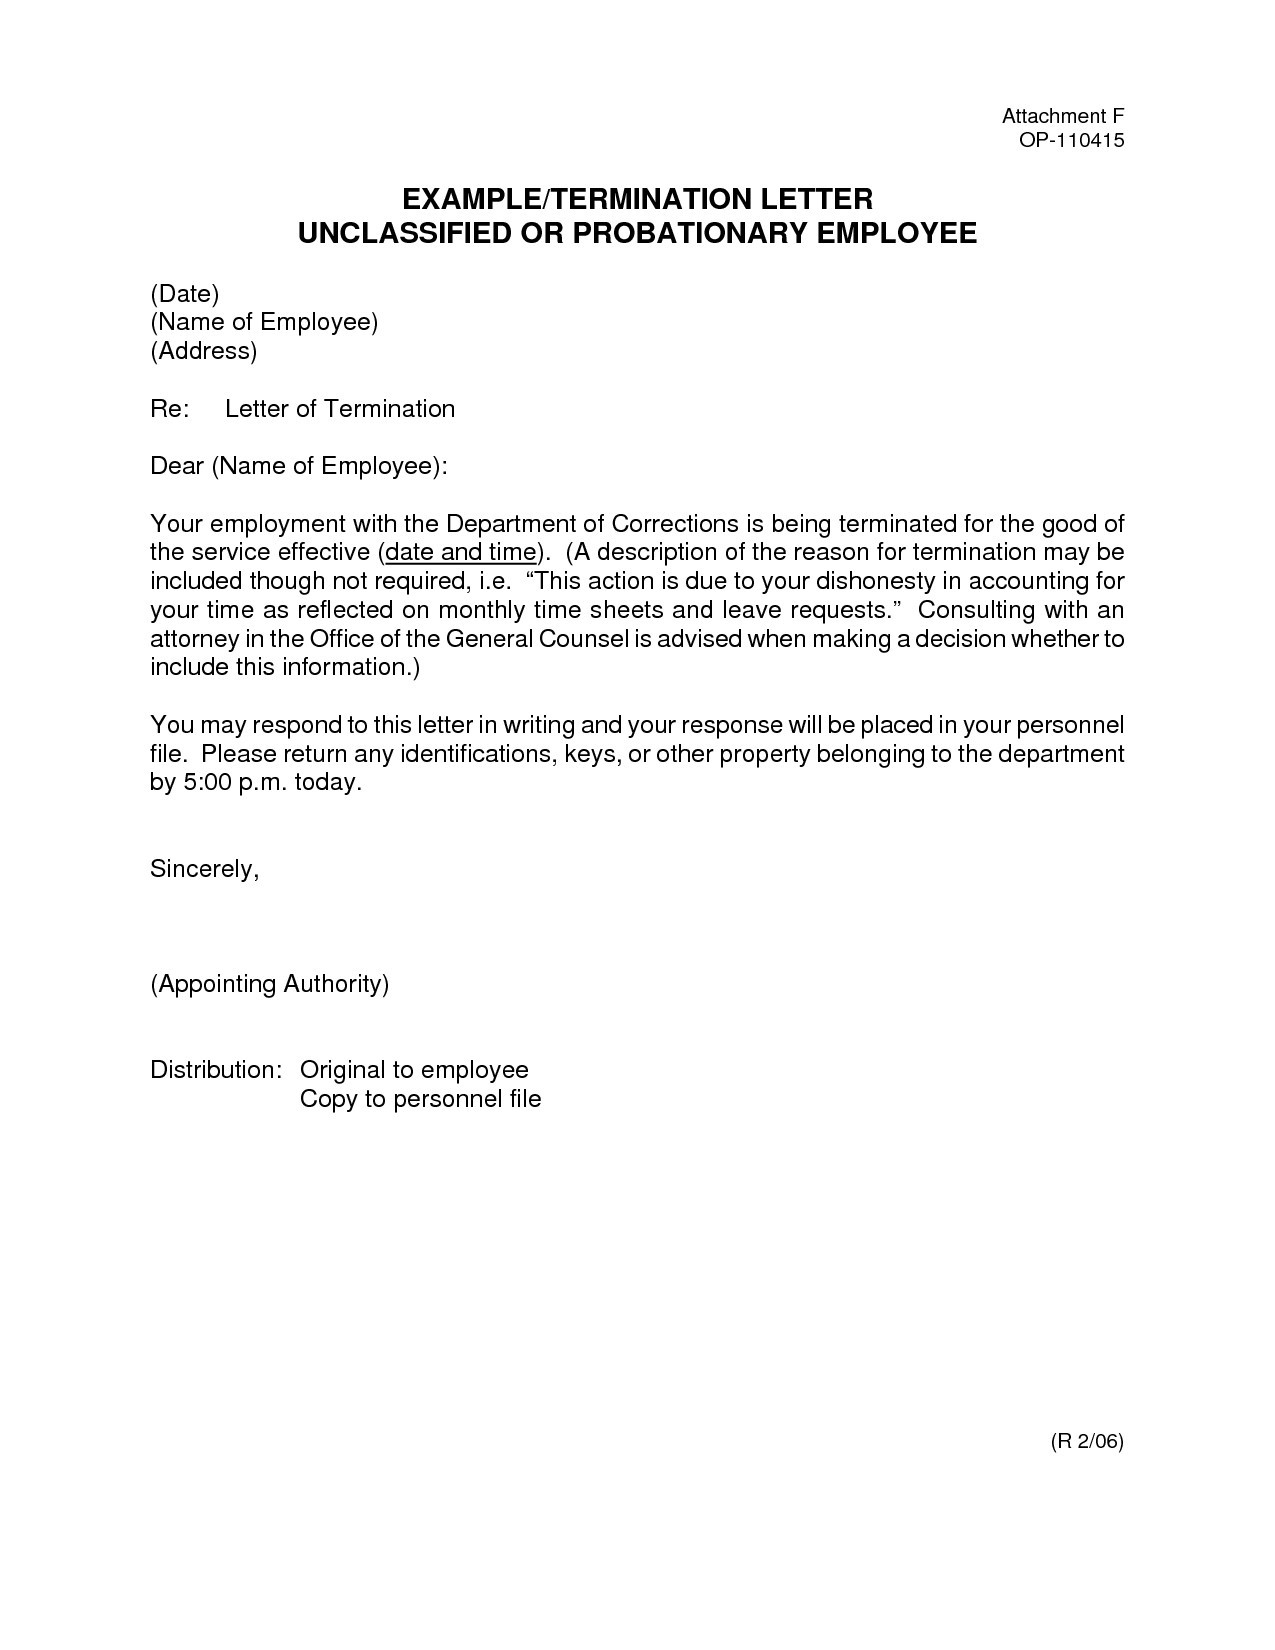 Probation Termination Letter Template - Termination Letter format without Notice Period New Valid